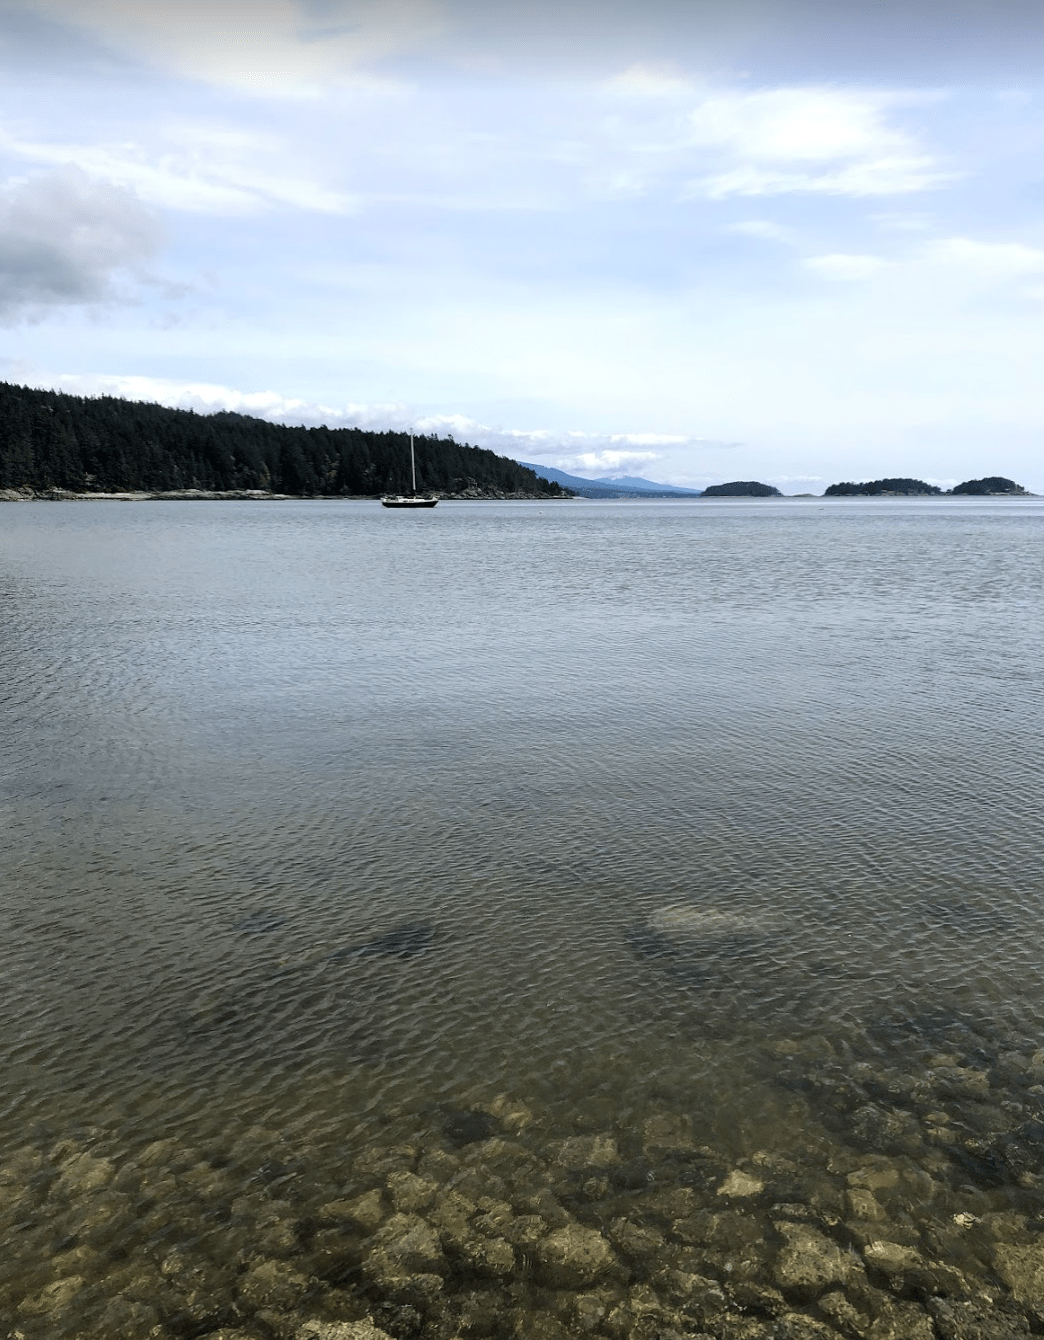 Sargeant Bay, South Sunshine Coast, BC